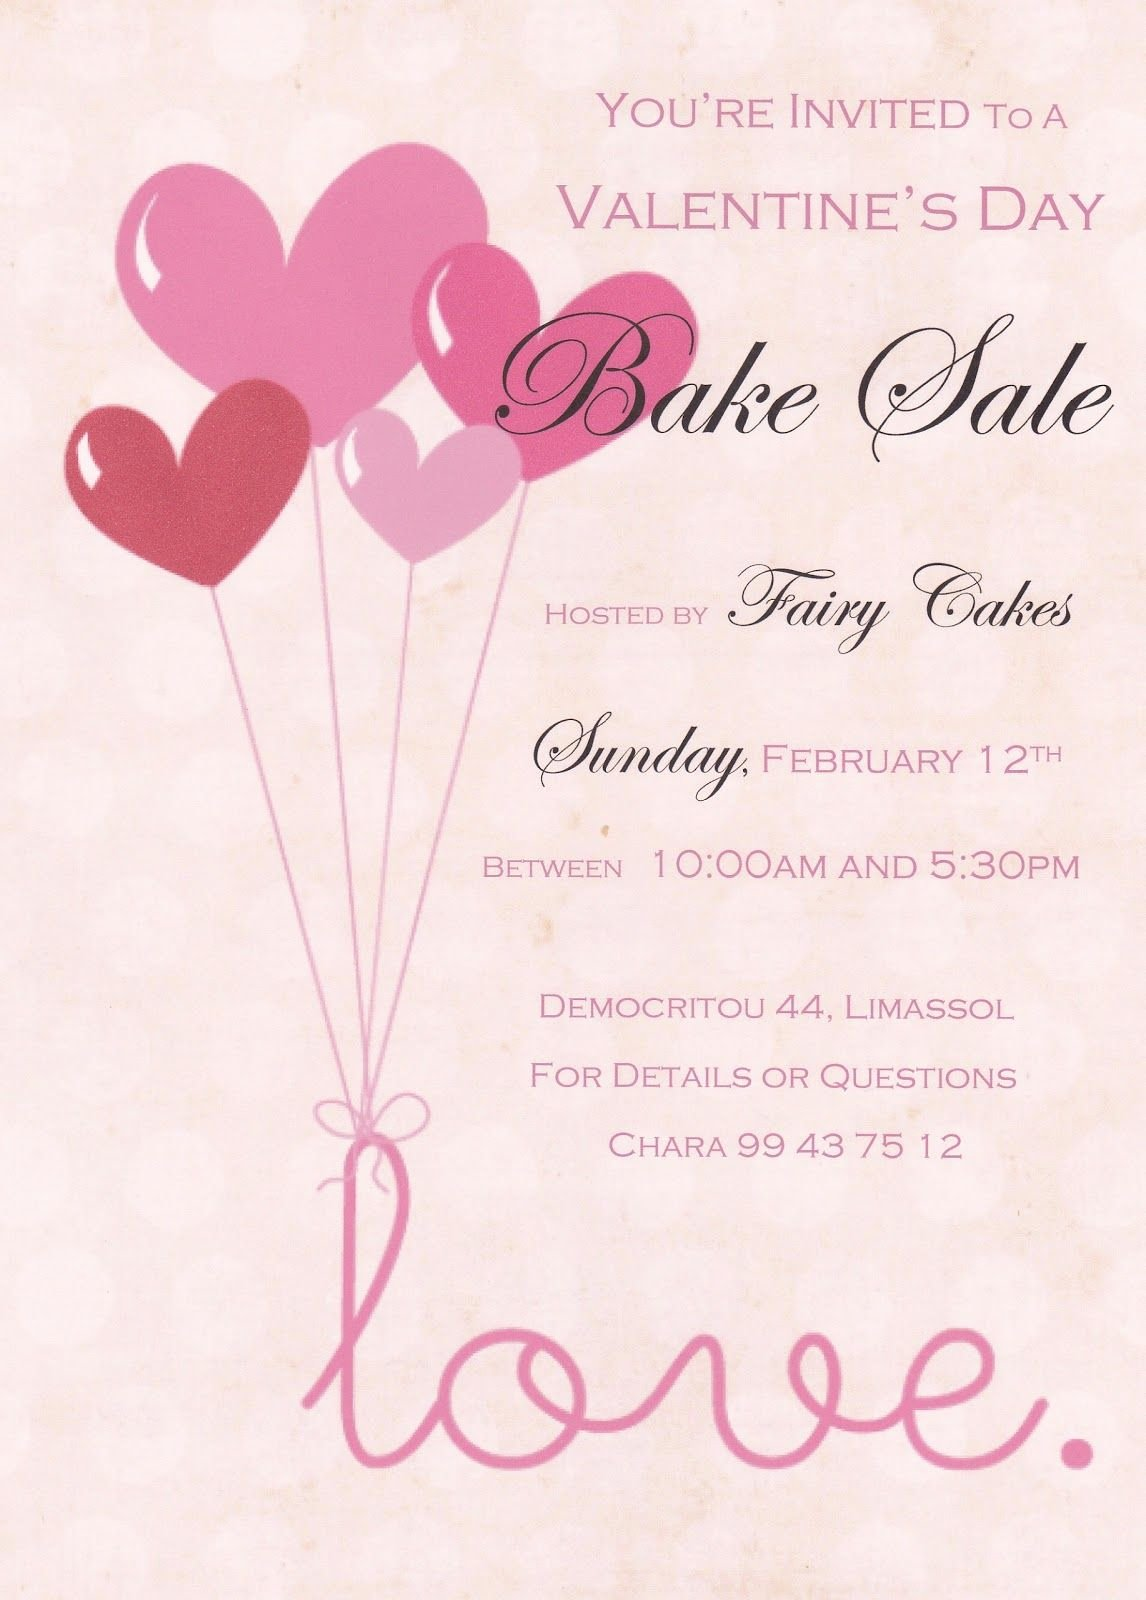 Bake Sale Flyer Templates Free Fresh Valentine Bake Sale Flyer Flyers